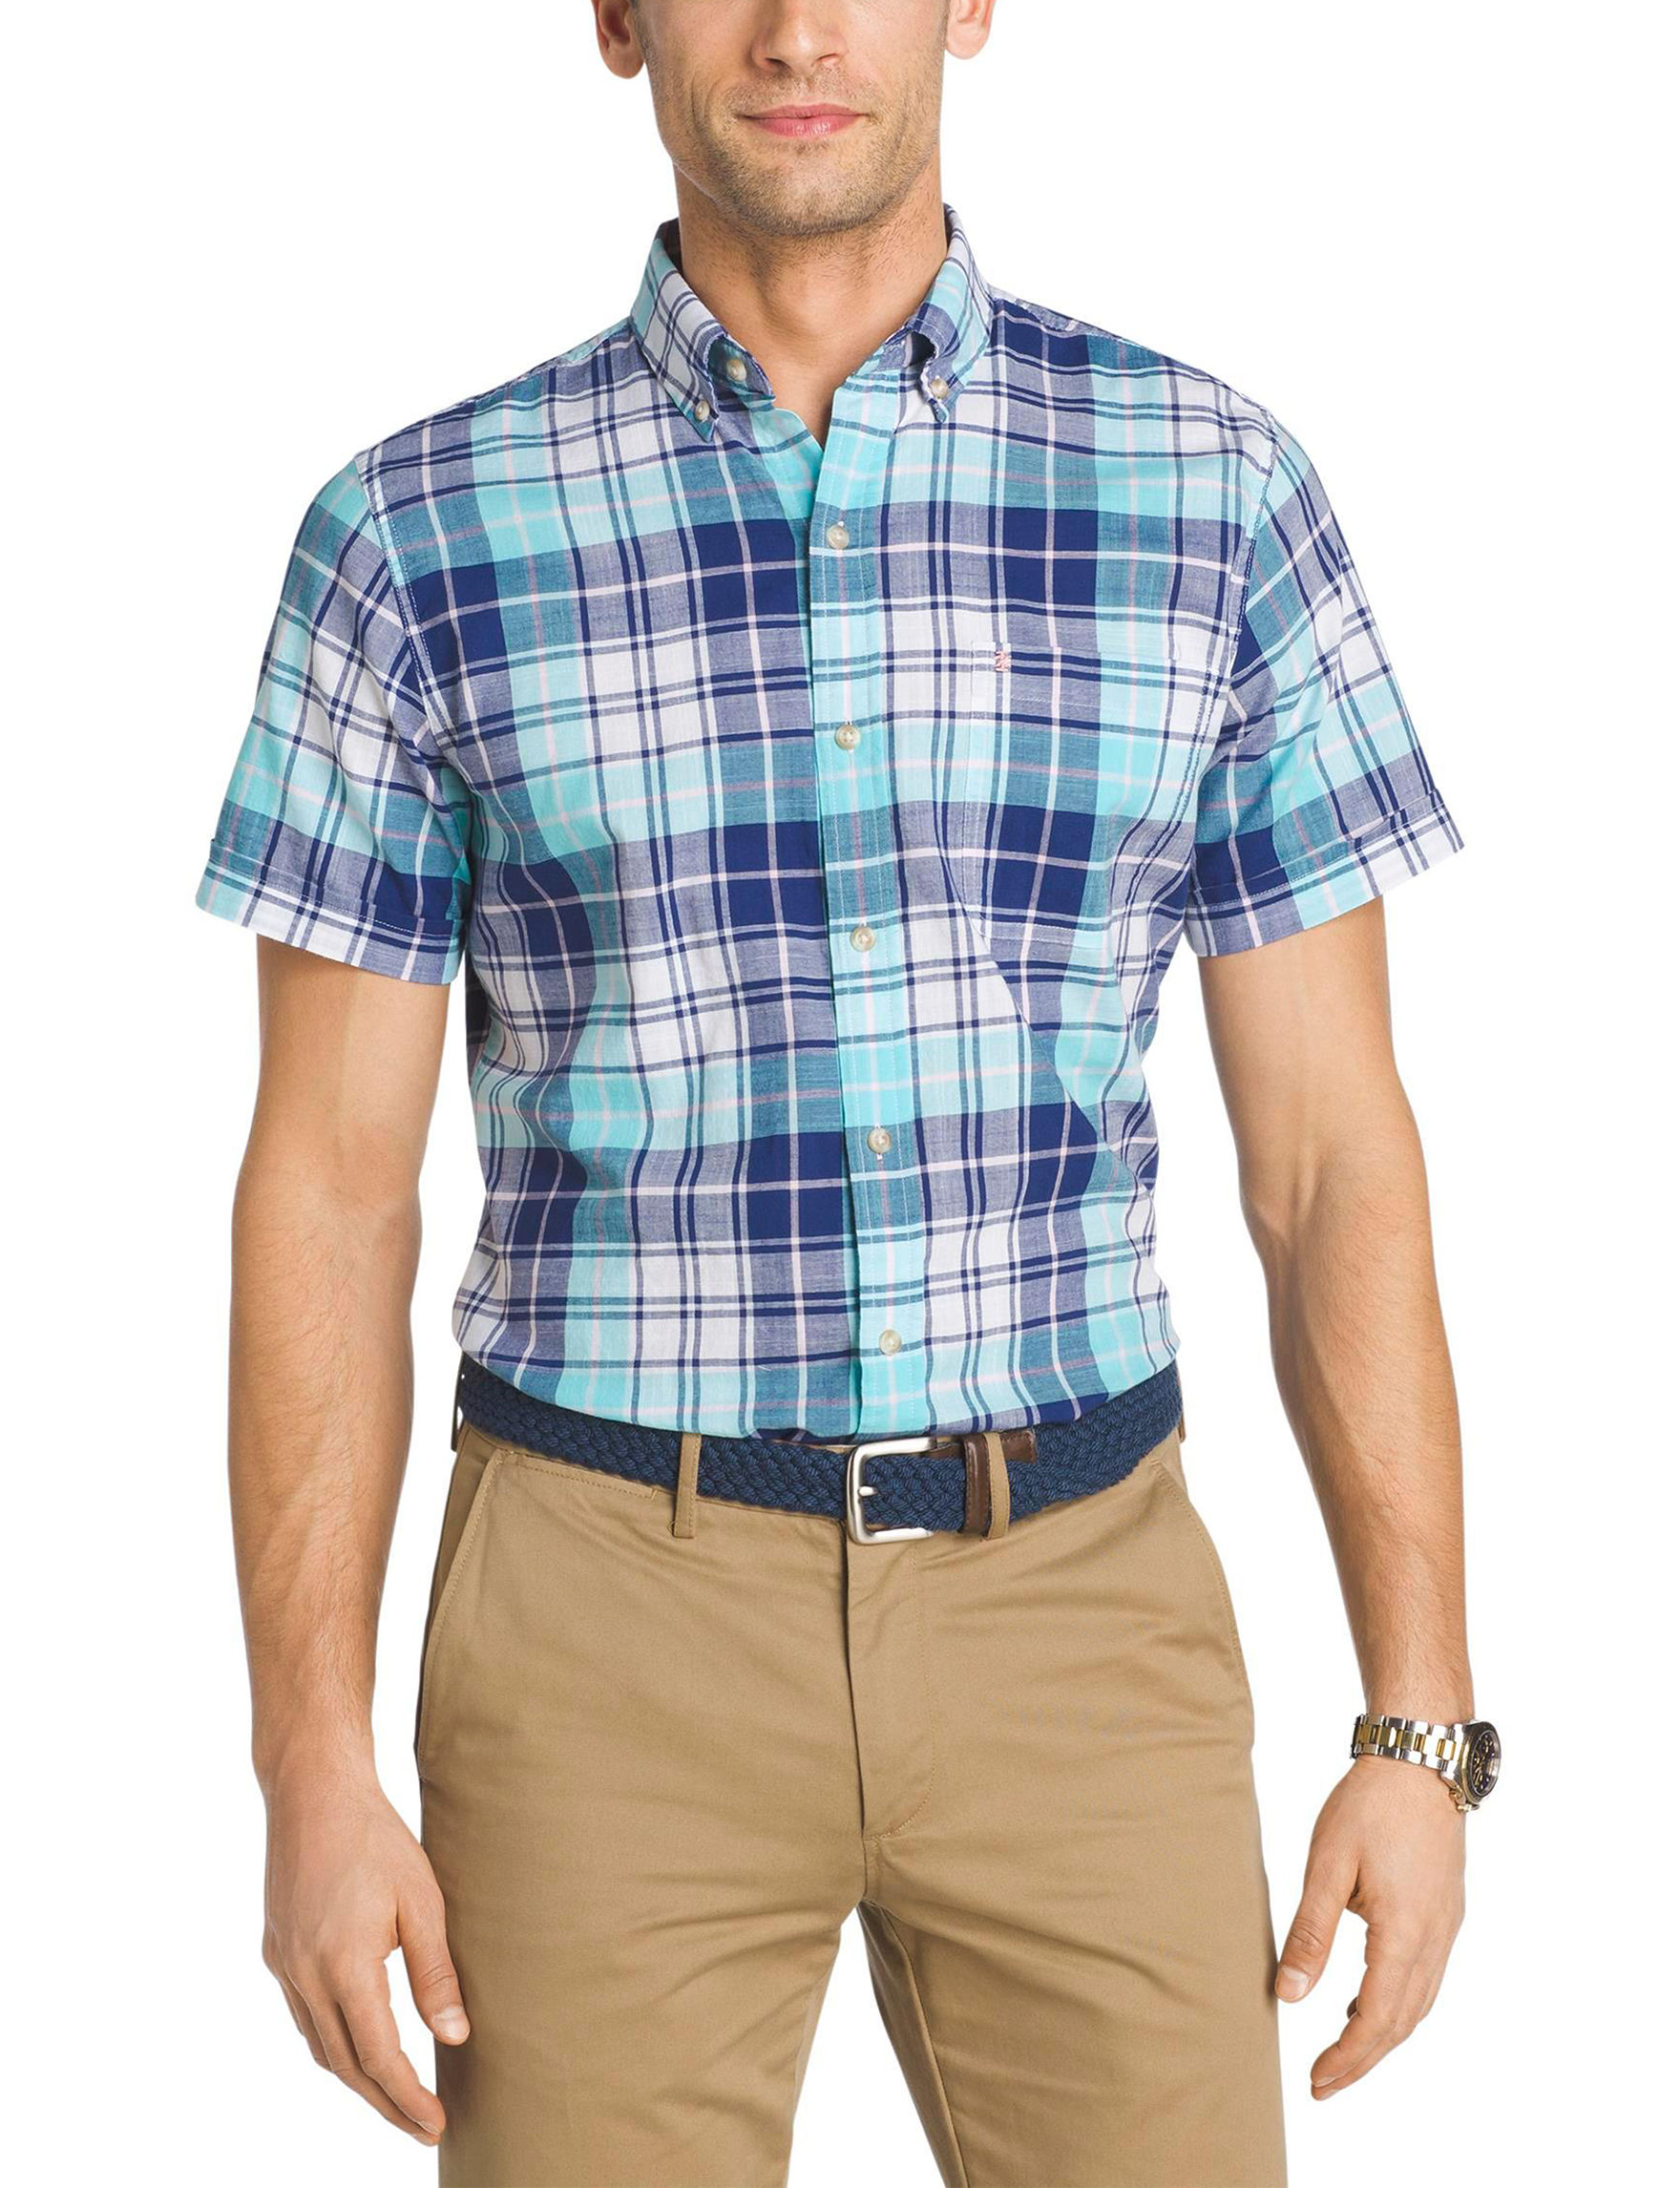 Izod Blue Radiance Casual Button Down Shirts